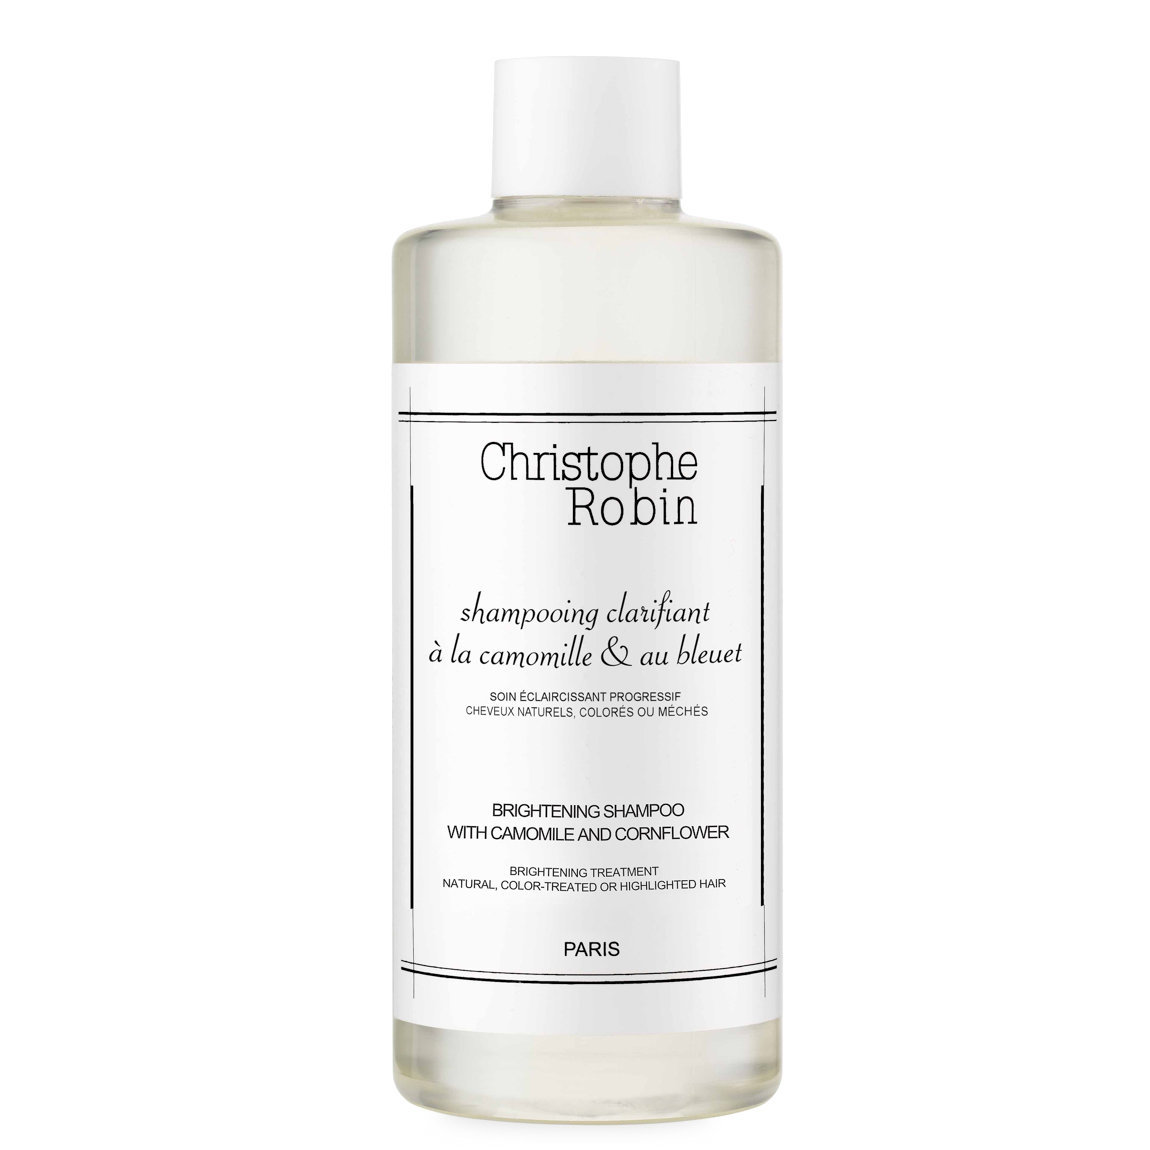 Christophe Robin Brightening Shampoo with Chamomile and Cornflower alternative view 1 - product swatch.